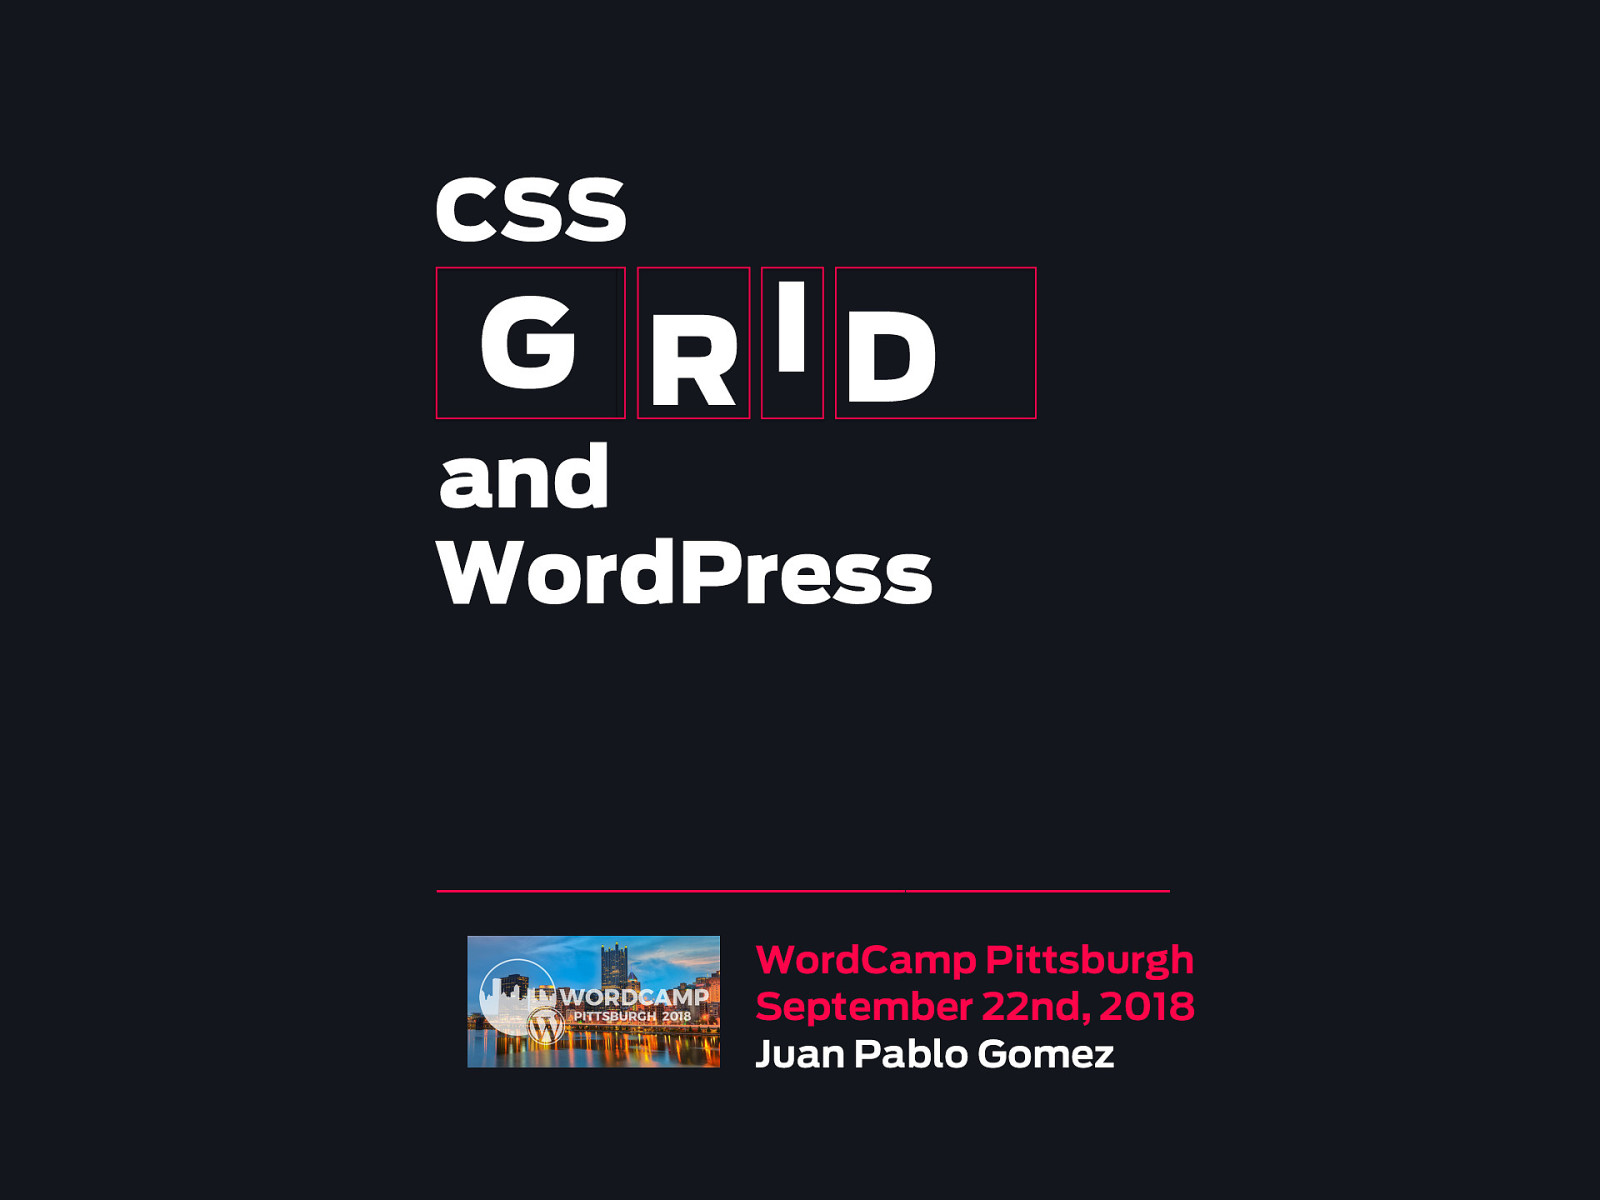 CSS GRID AND WORDPRESS